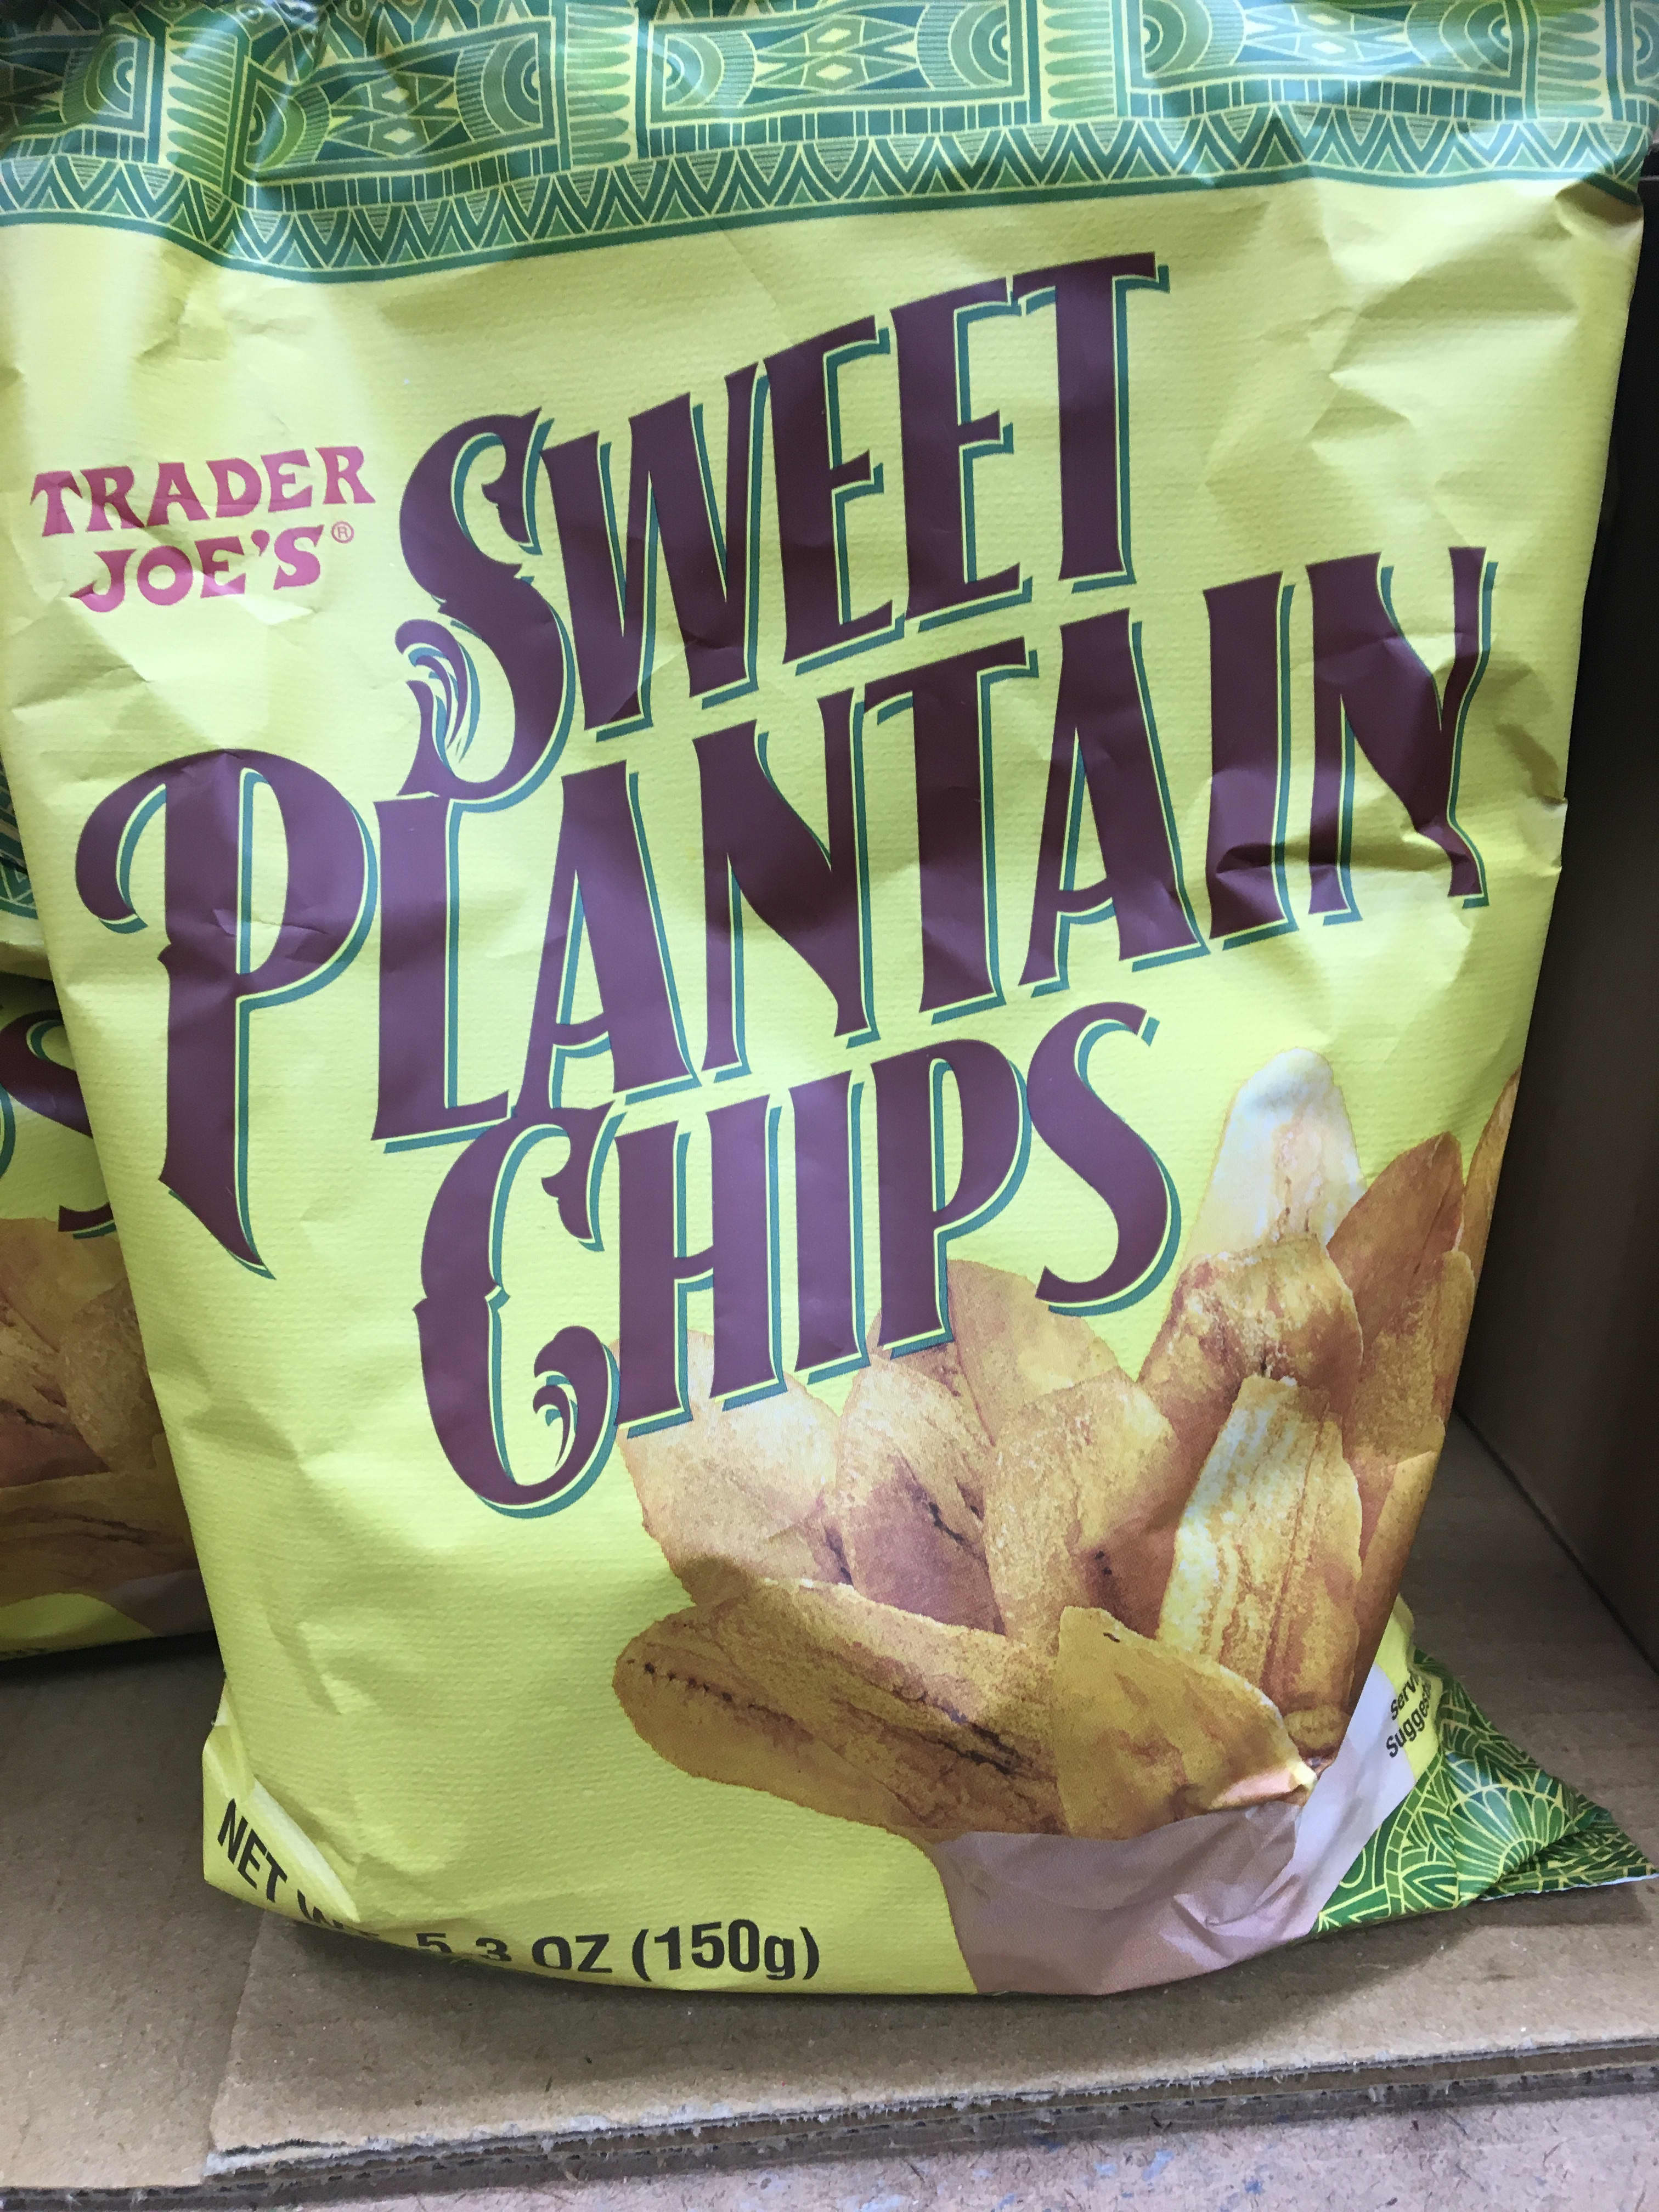 15 Lunch Box Snacks You Should Add to Your Trader Joe's Shopping List: gallery image 14